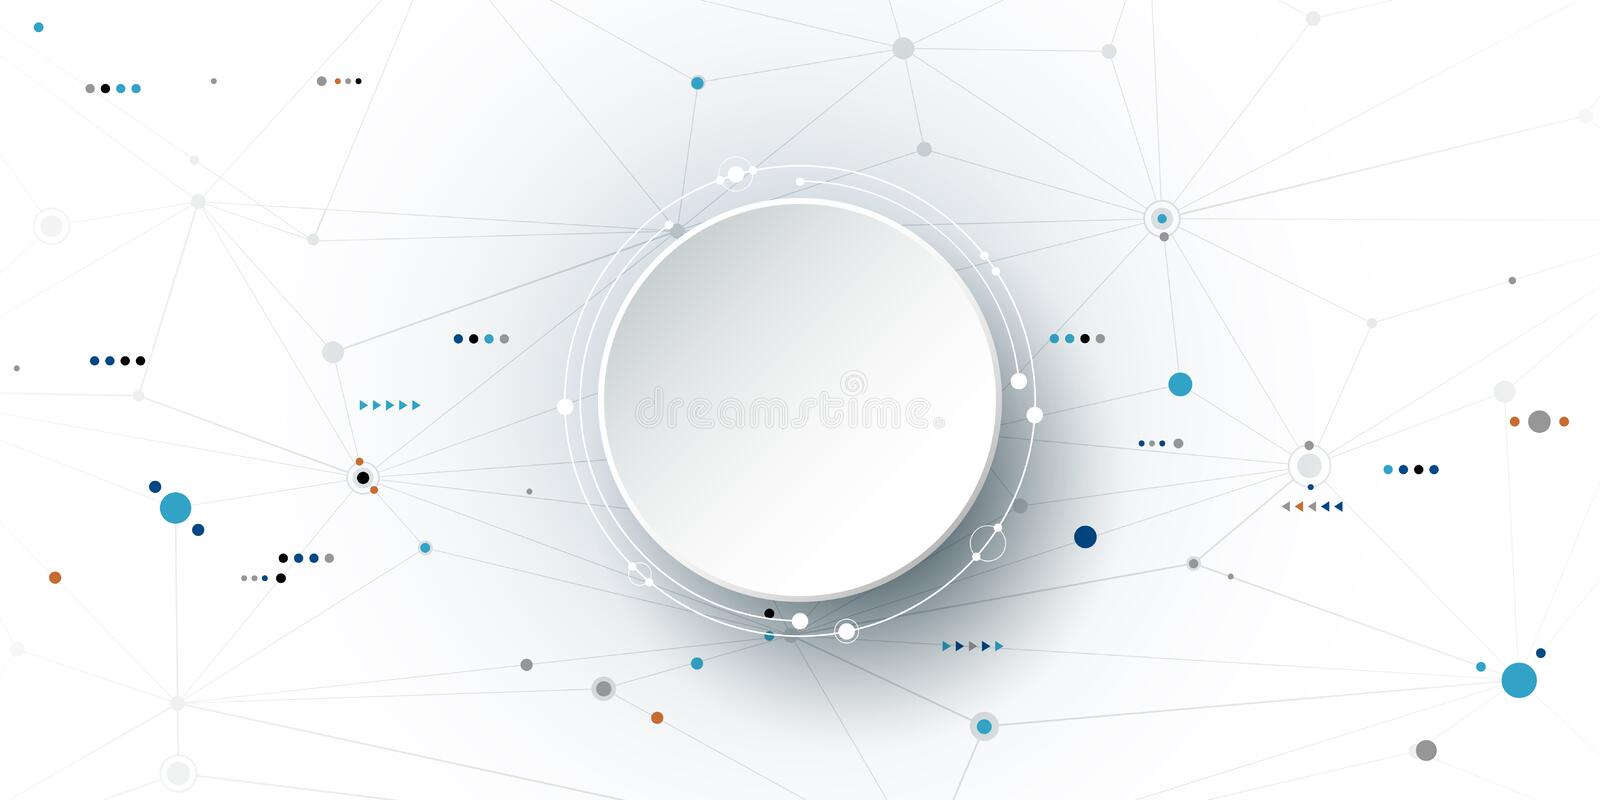 Vector illustration abstract molecules and communication, social media technology concept stock illustration